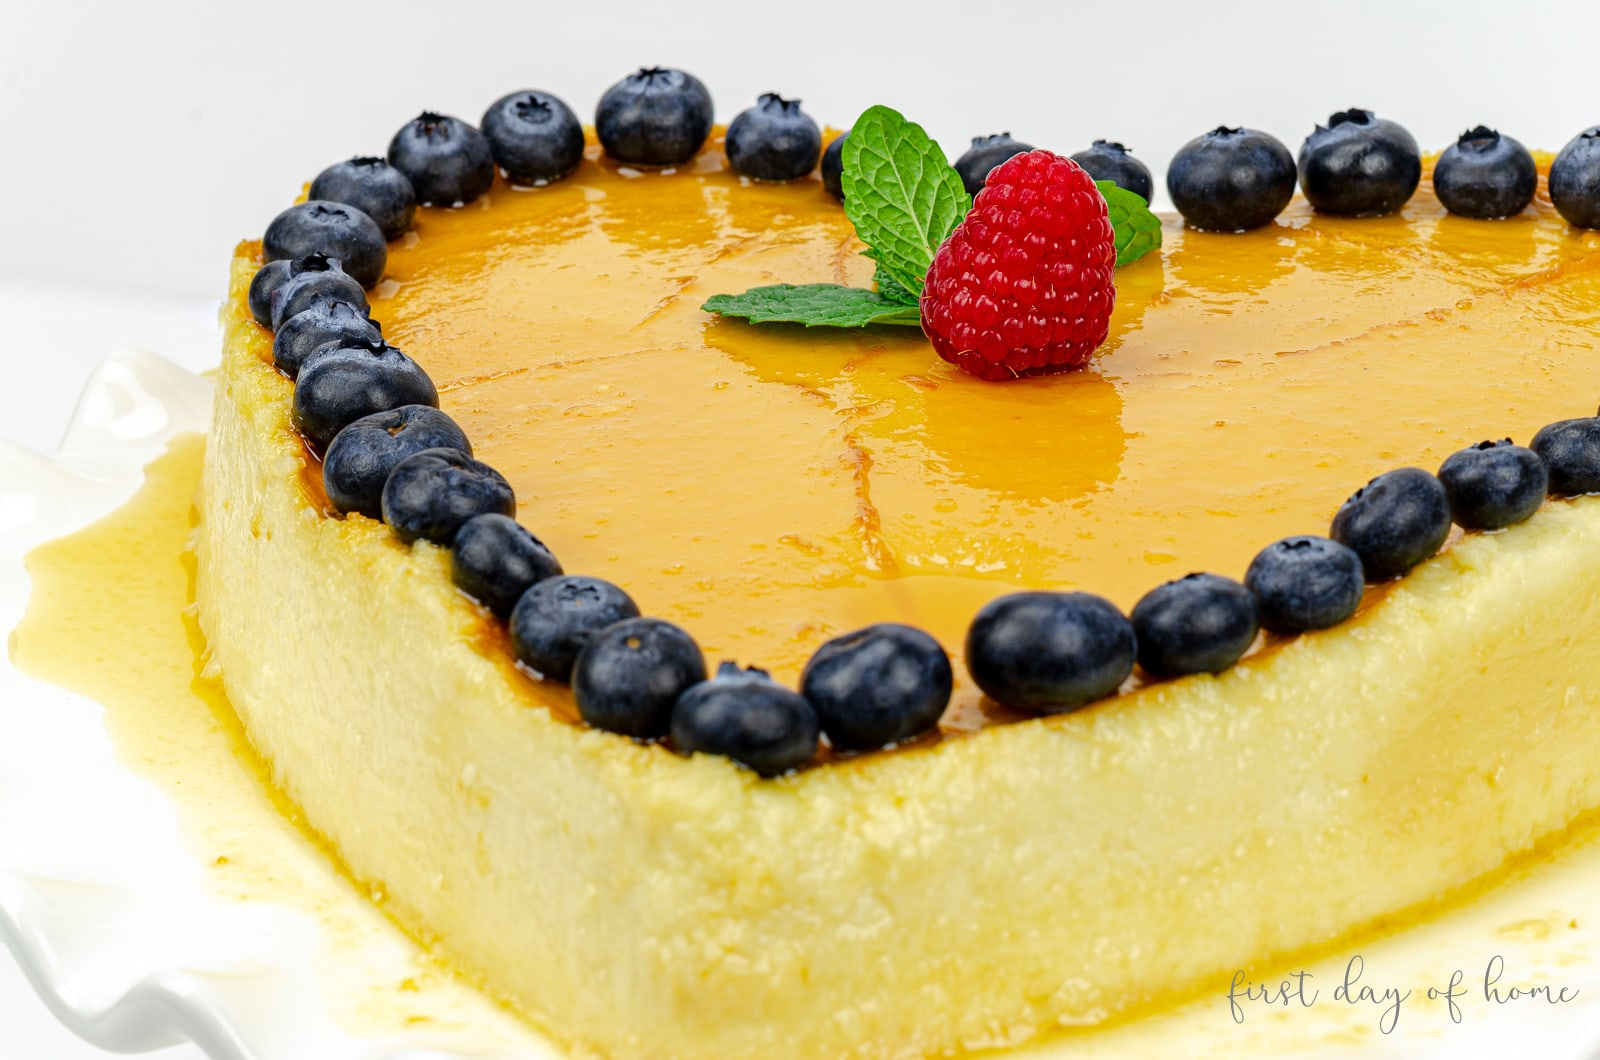 Caramelized cheesecake flan recipe (flan de queso) made from scratch